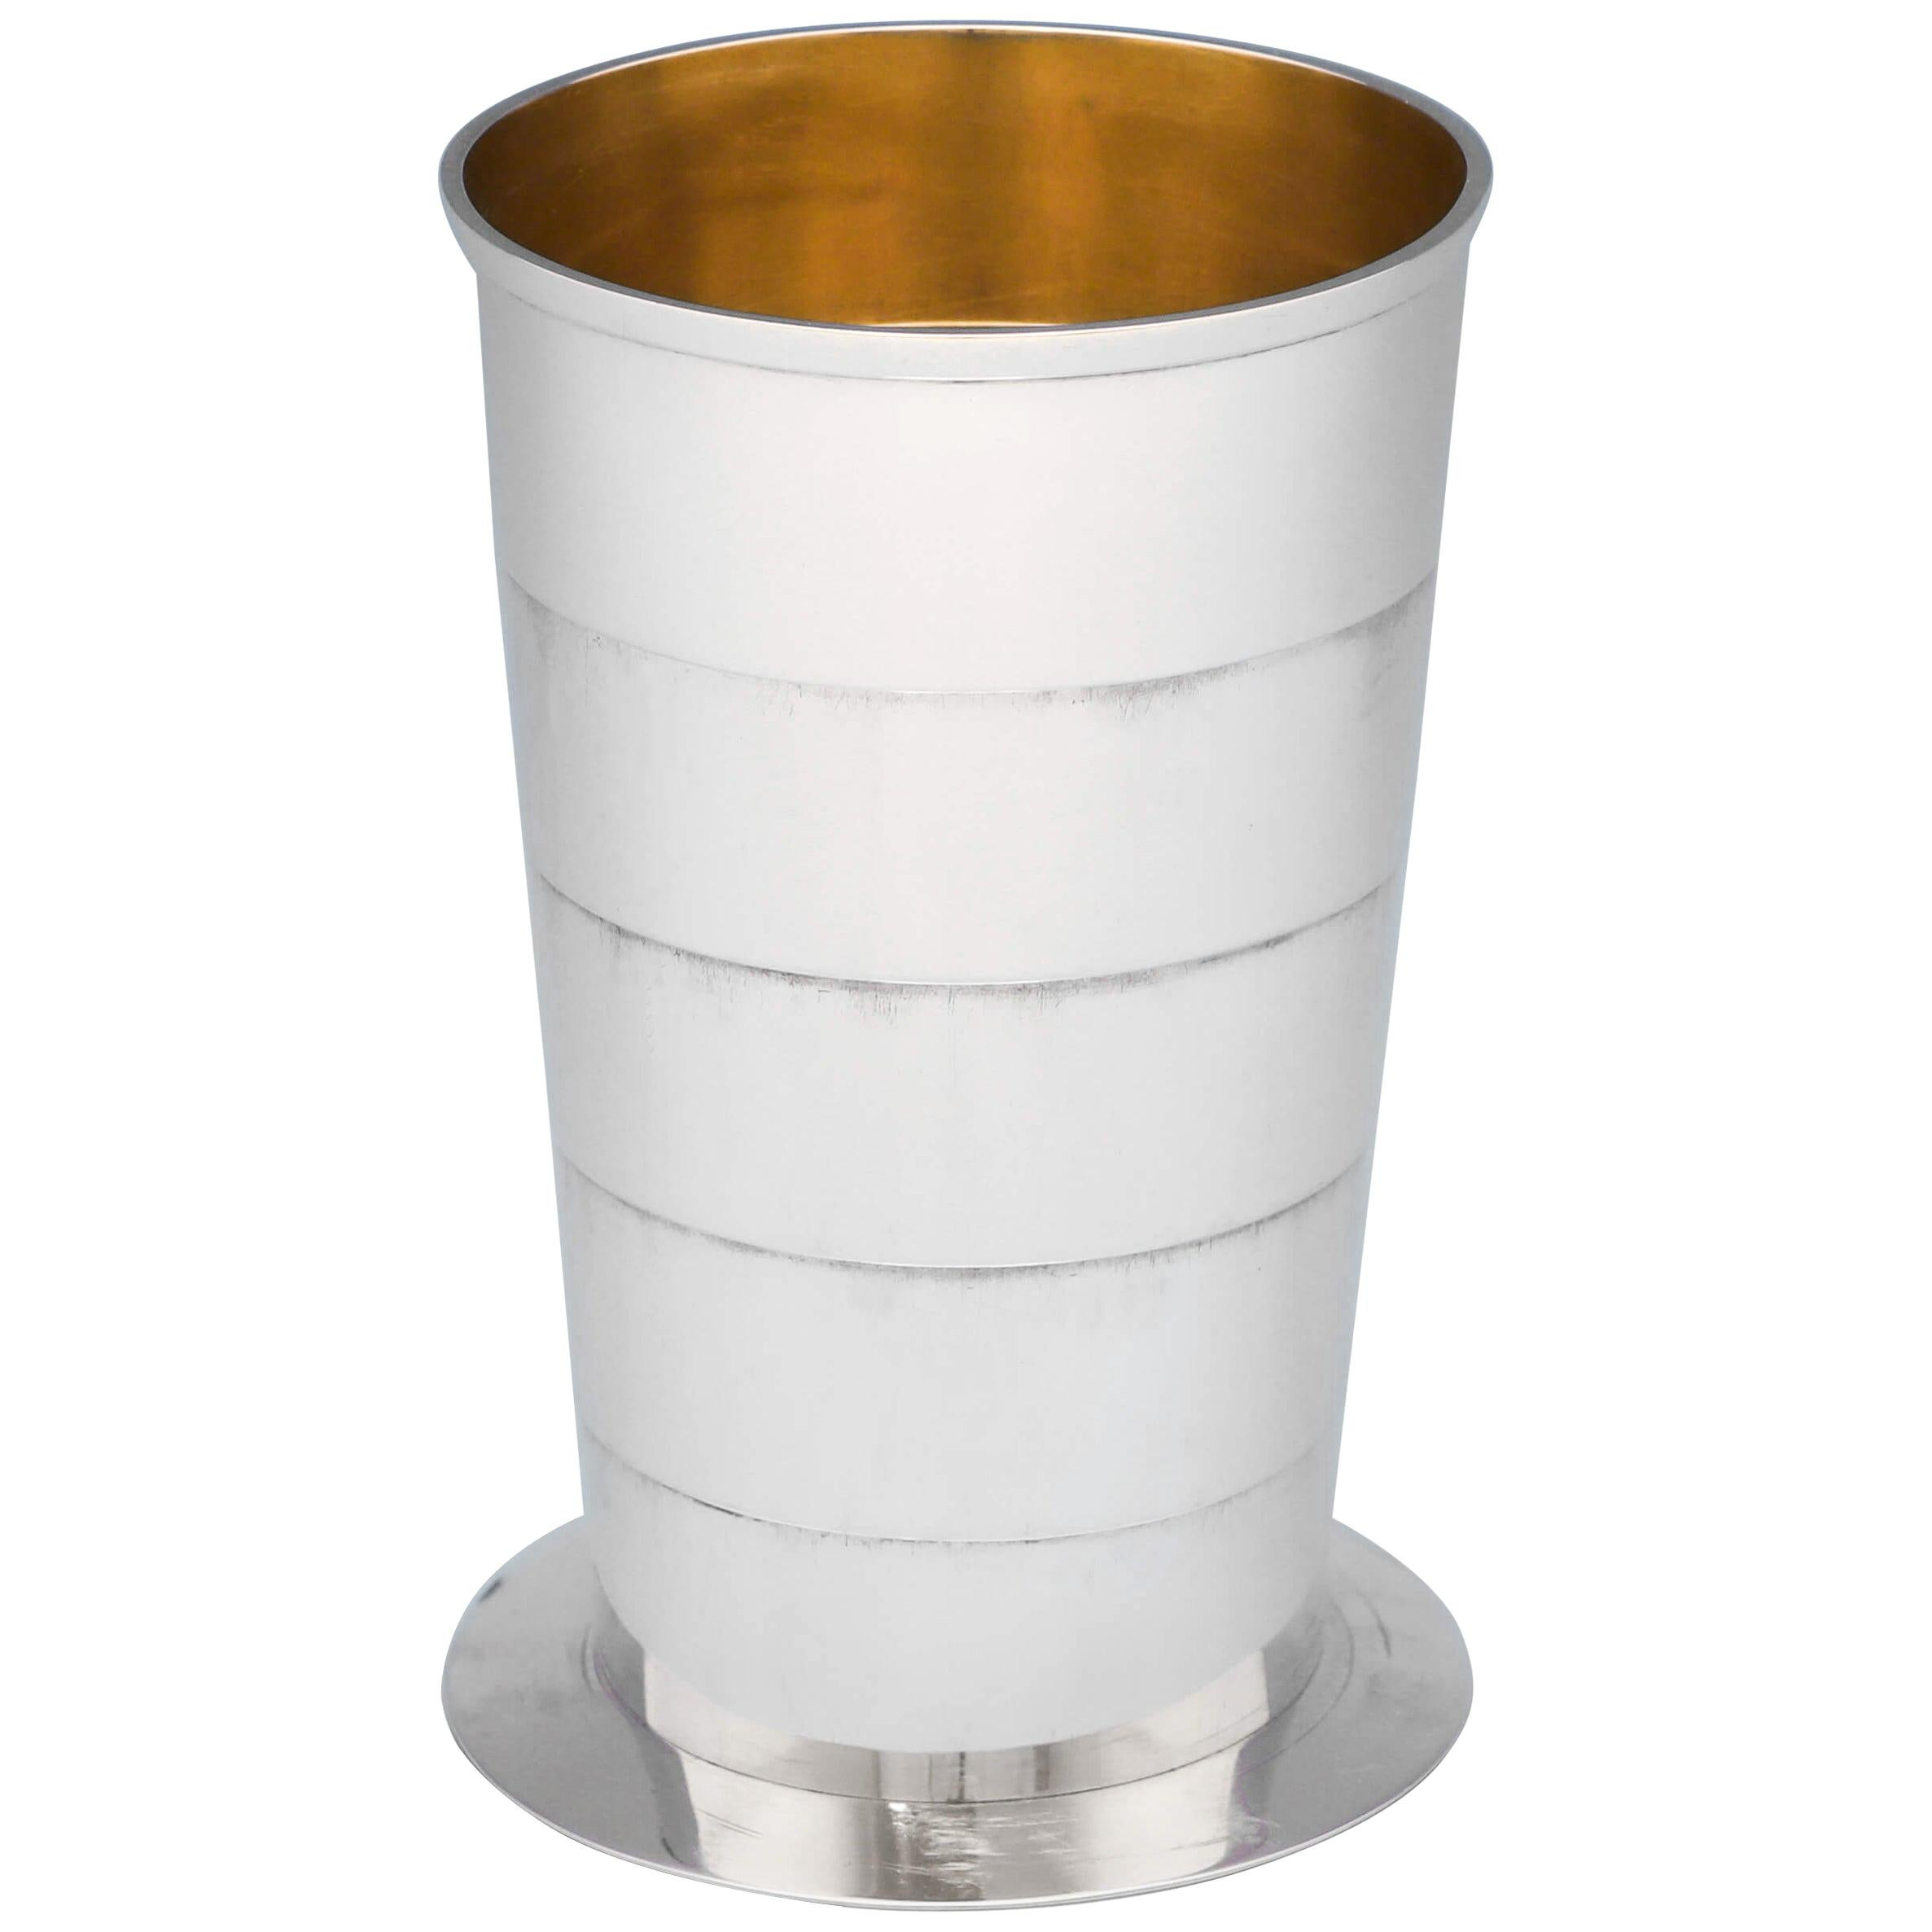 Antique Collapsible Sterling Silver Beaker by George Unite, Birmingham, 1913